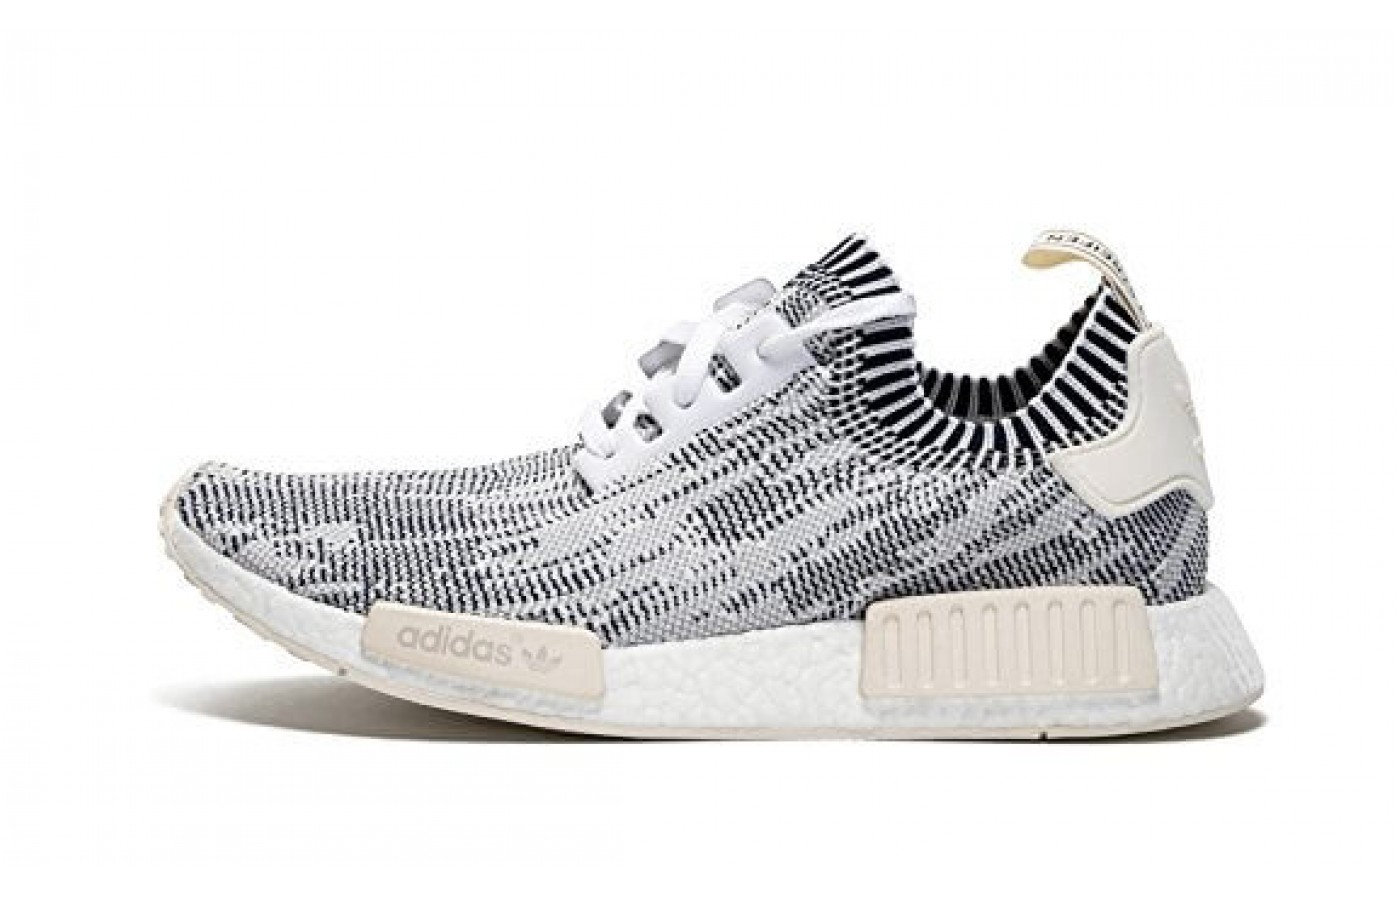 a6adafa0e Adidas NMD R1 Primeknit - To Buy or Not in May 2019